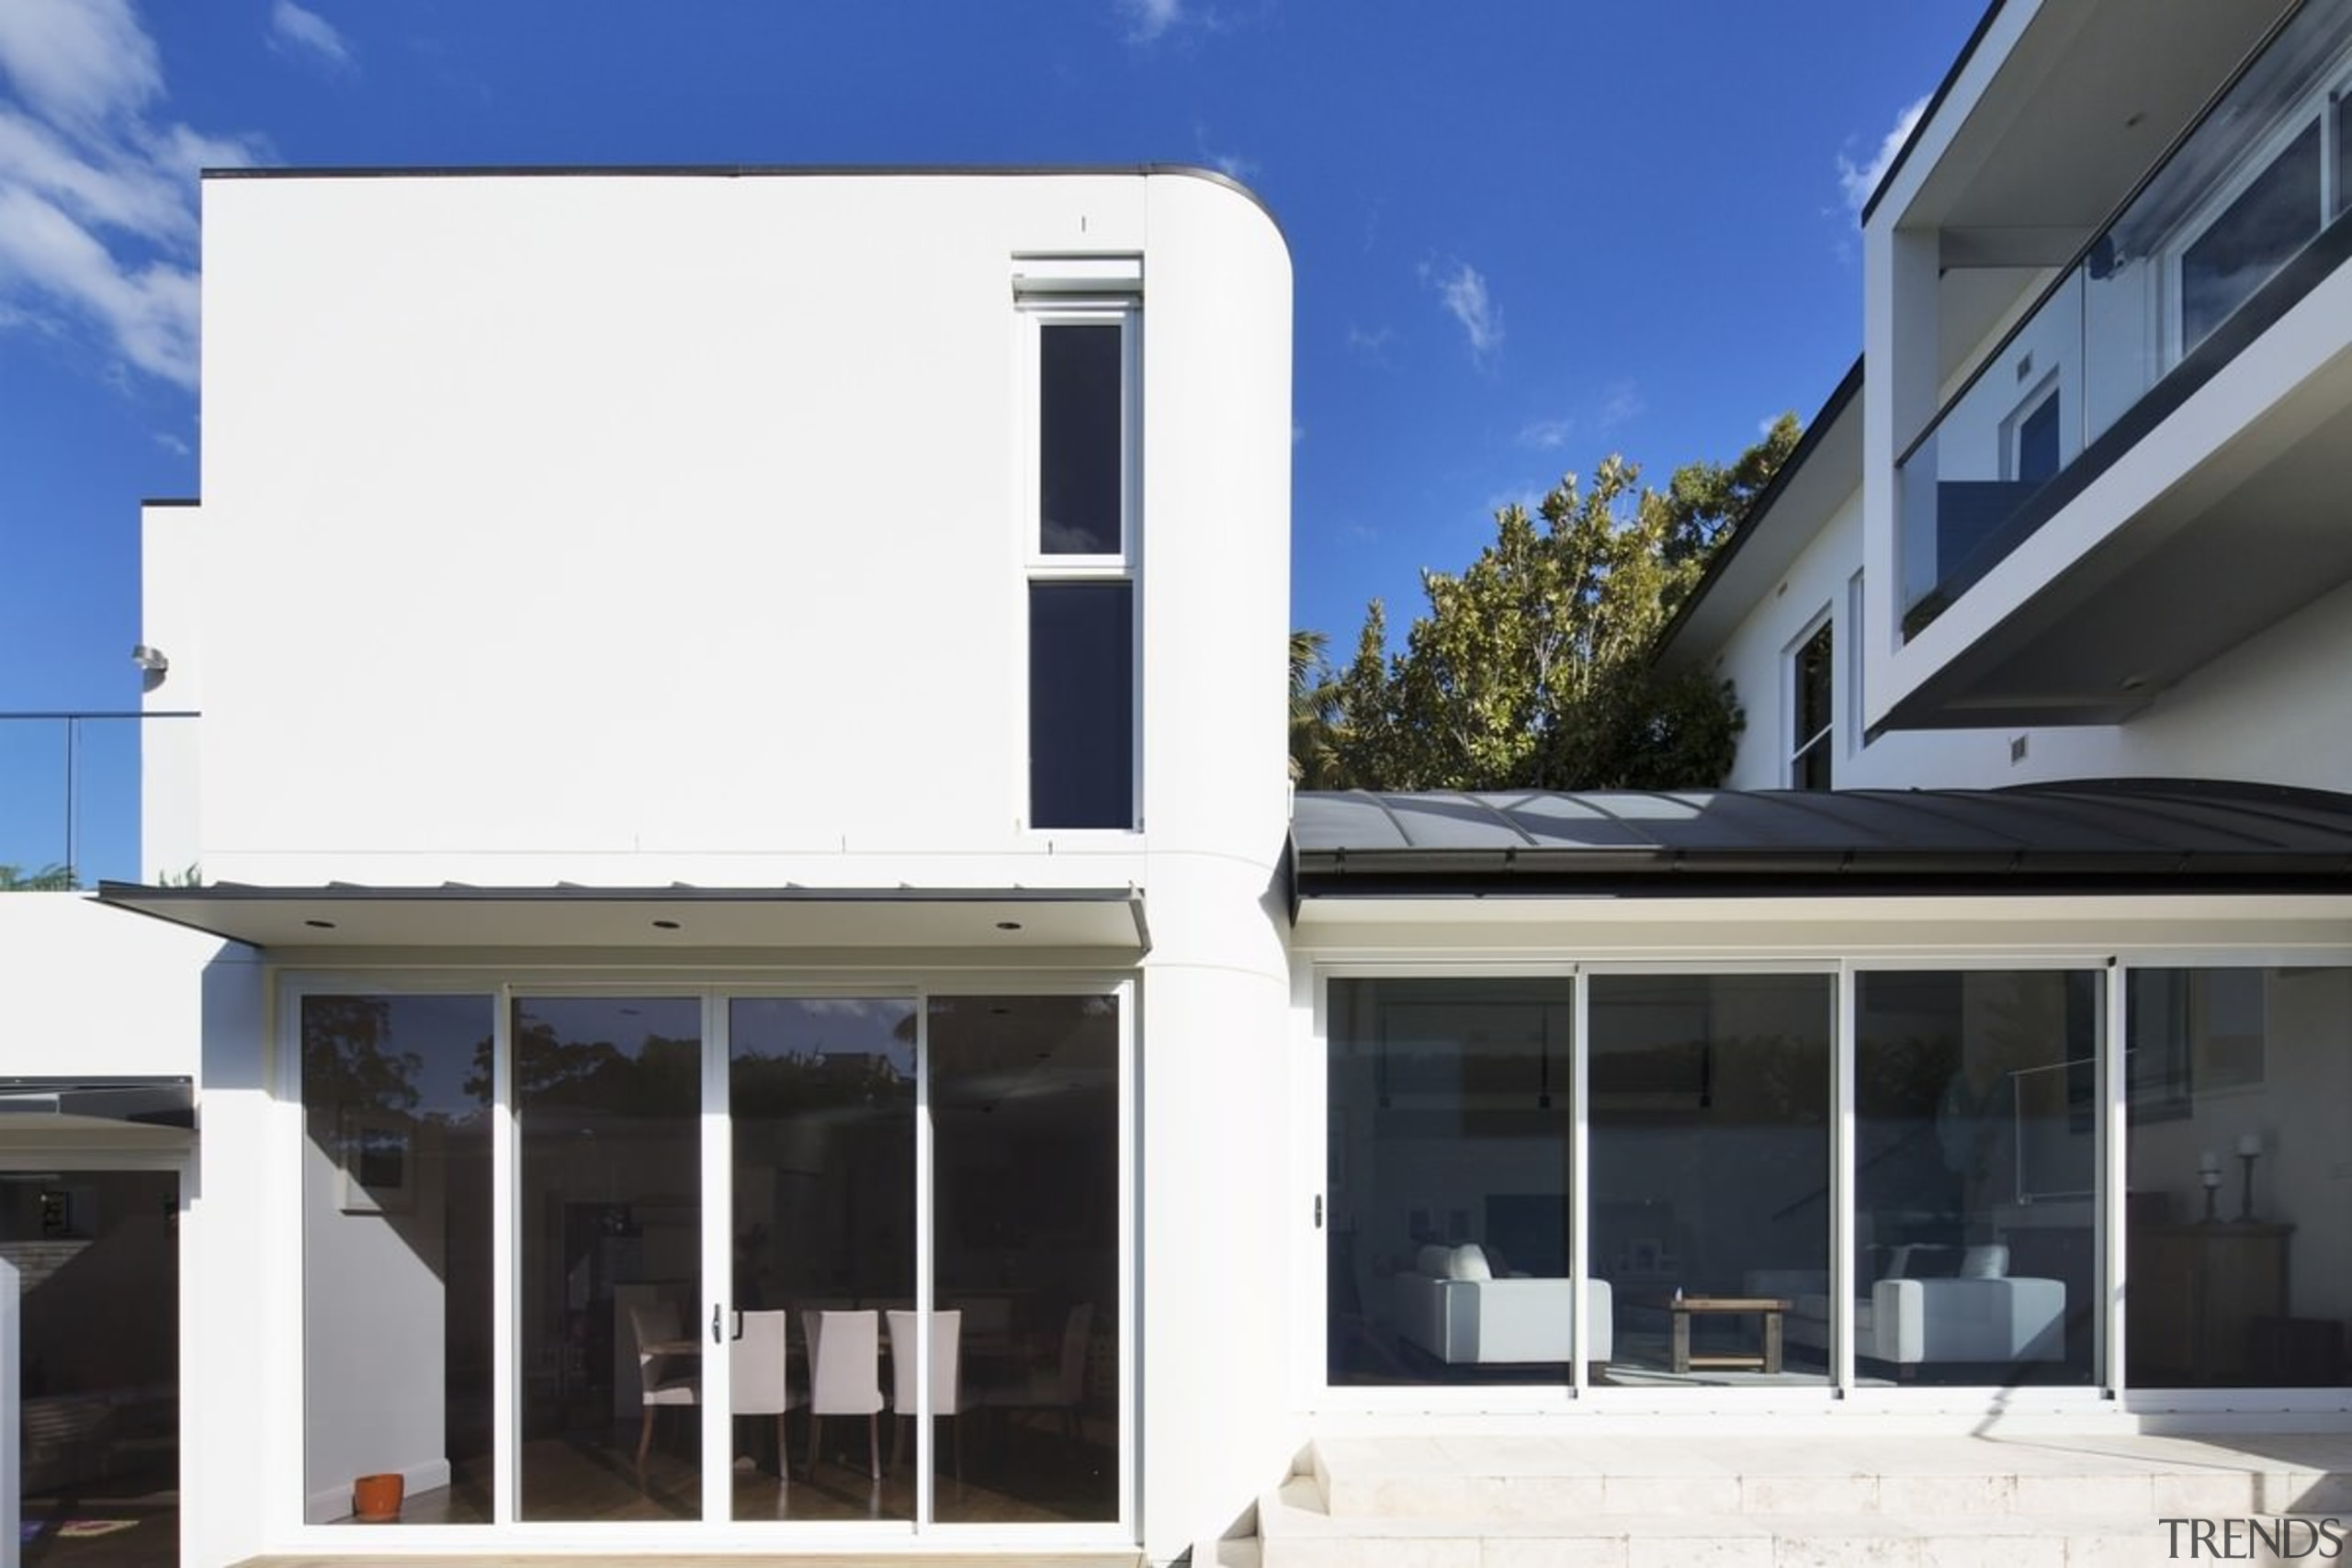 The home is centred around the location, facing architecture, building, elevation, facade, home, house, property, real estate, roof, window, white, black